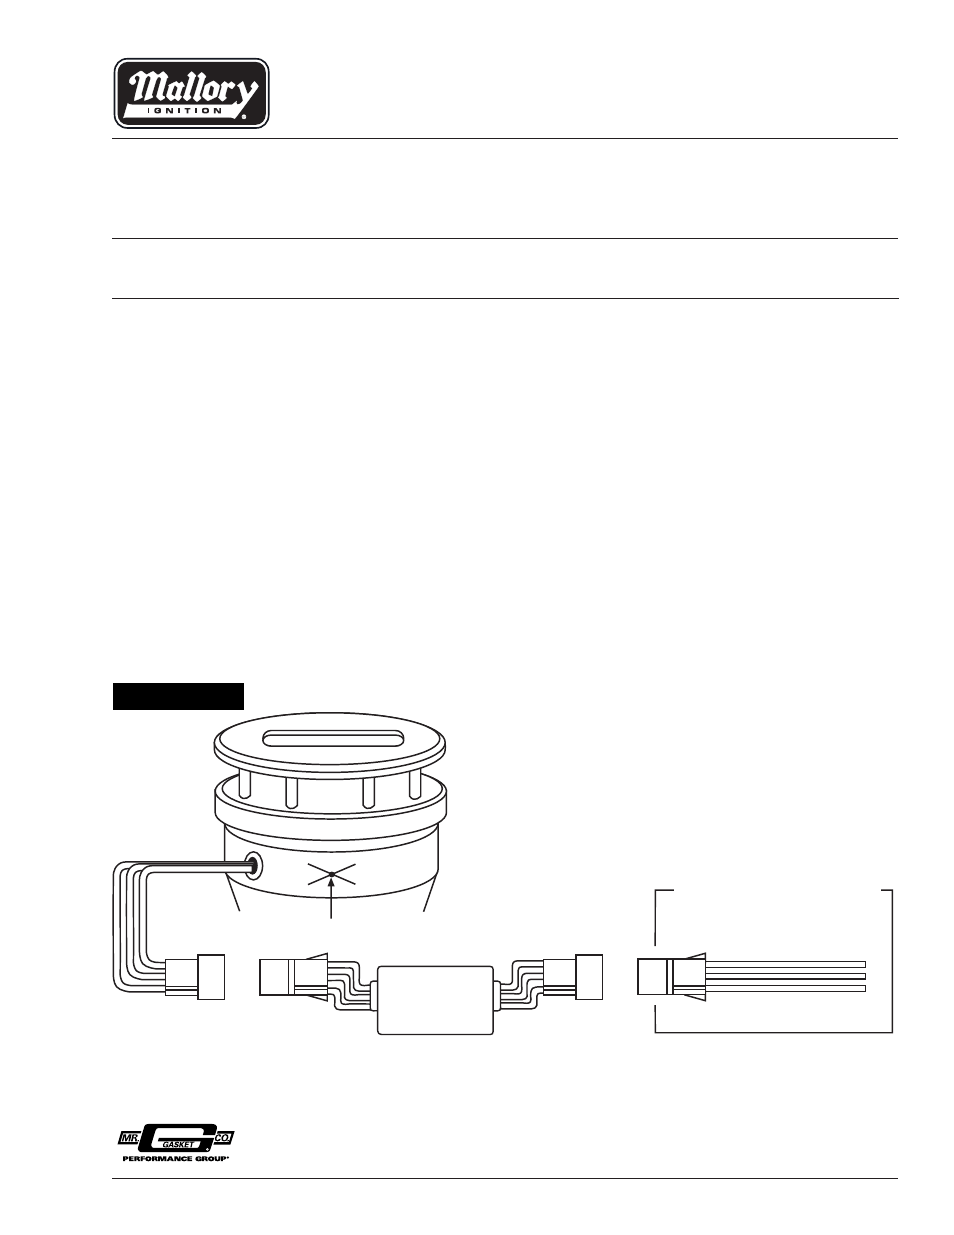 Mallory Ignition Wiring Diagram Pro 9000 Auto Electrical Rover 45 Diesel 1979 Dodge 440 Hyfire 6a